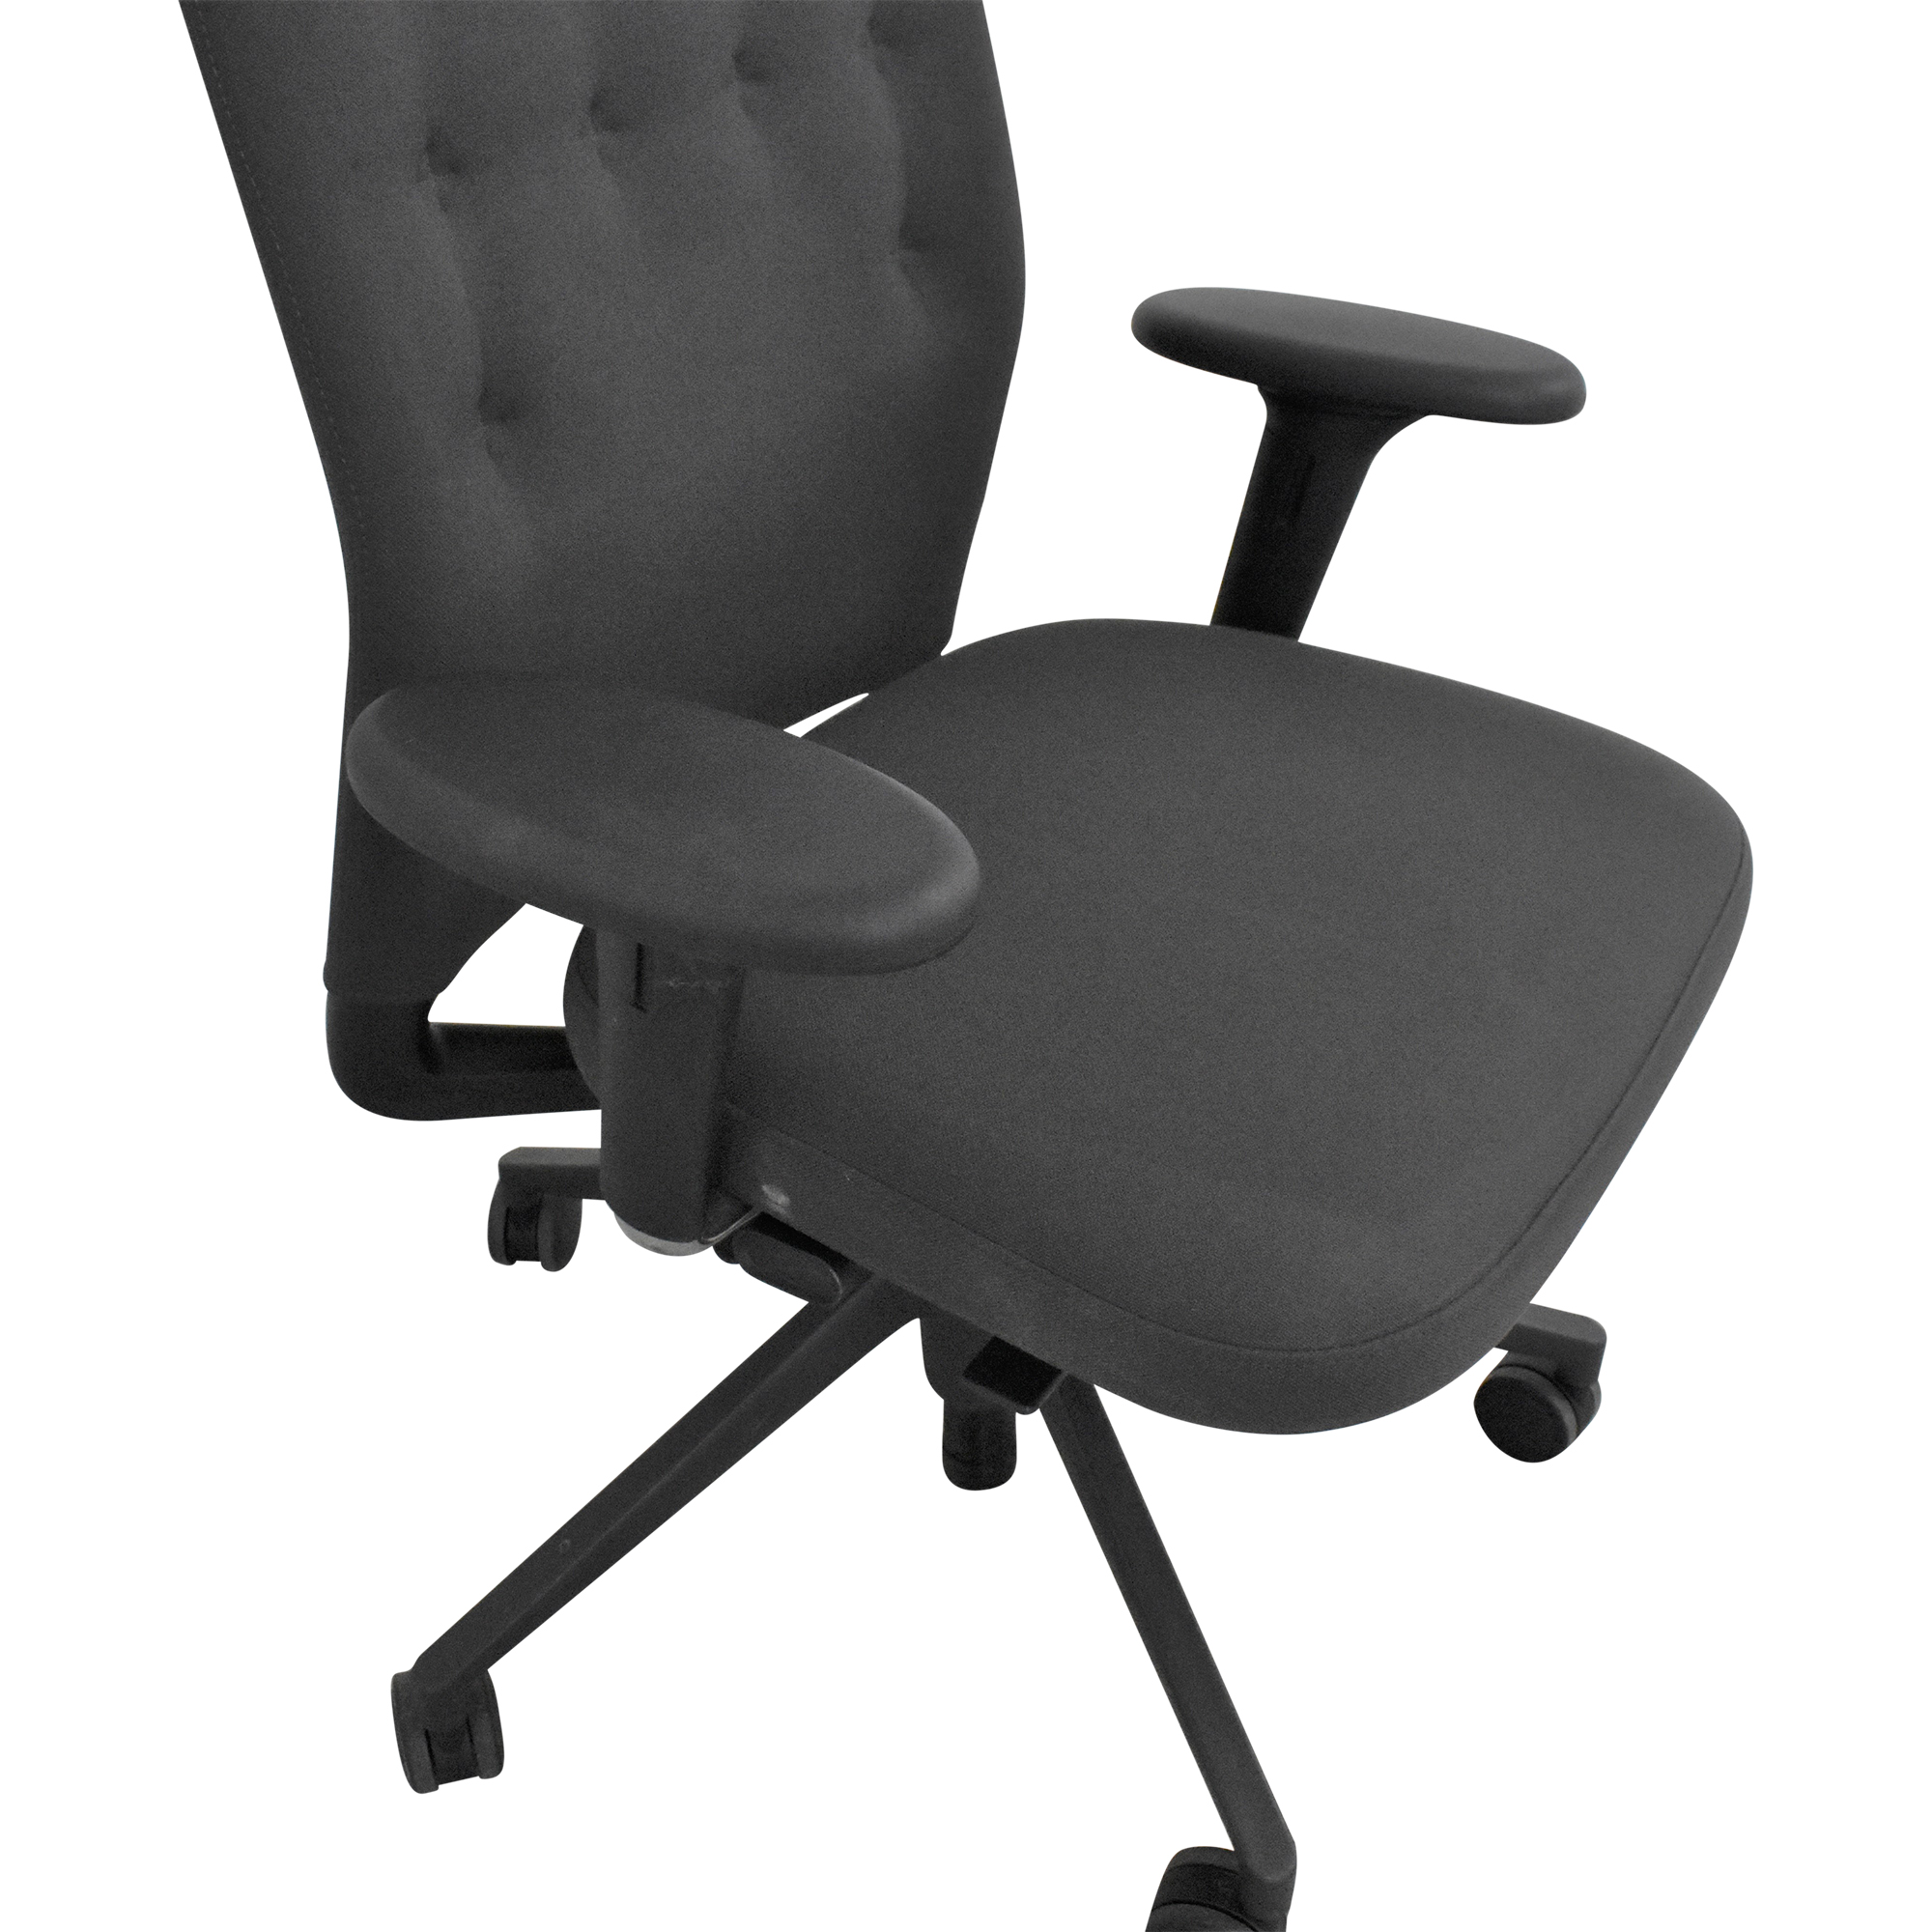 Vitra Vitra ID Trim Office Chair coupon